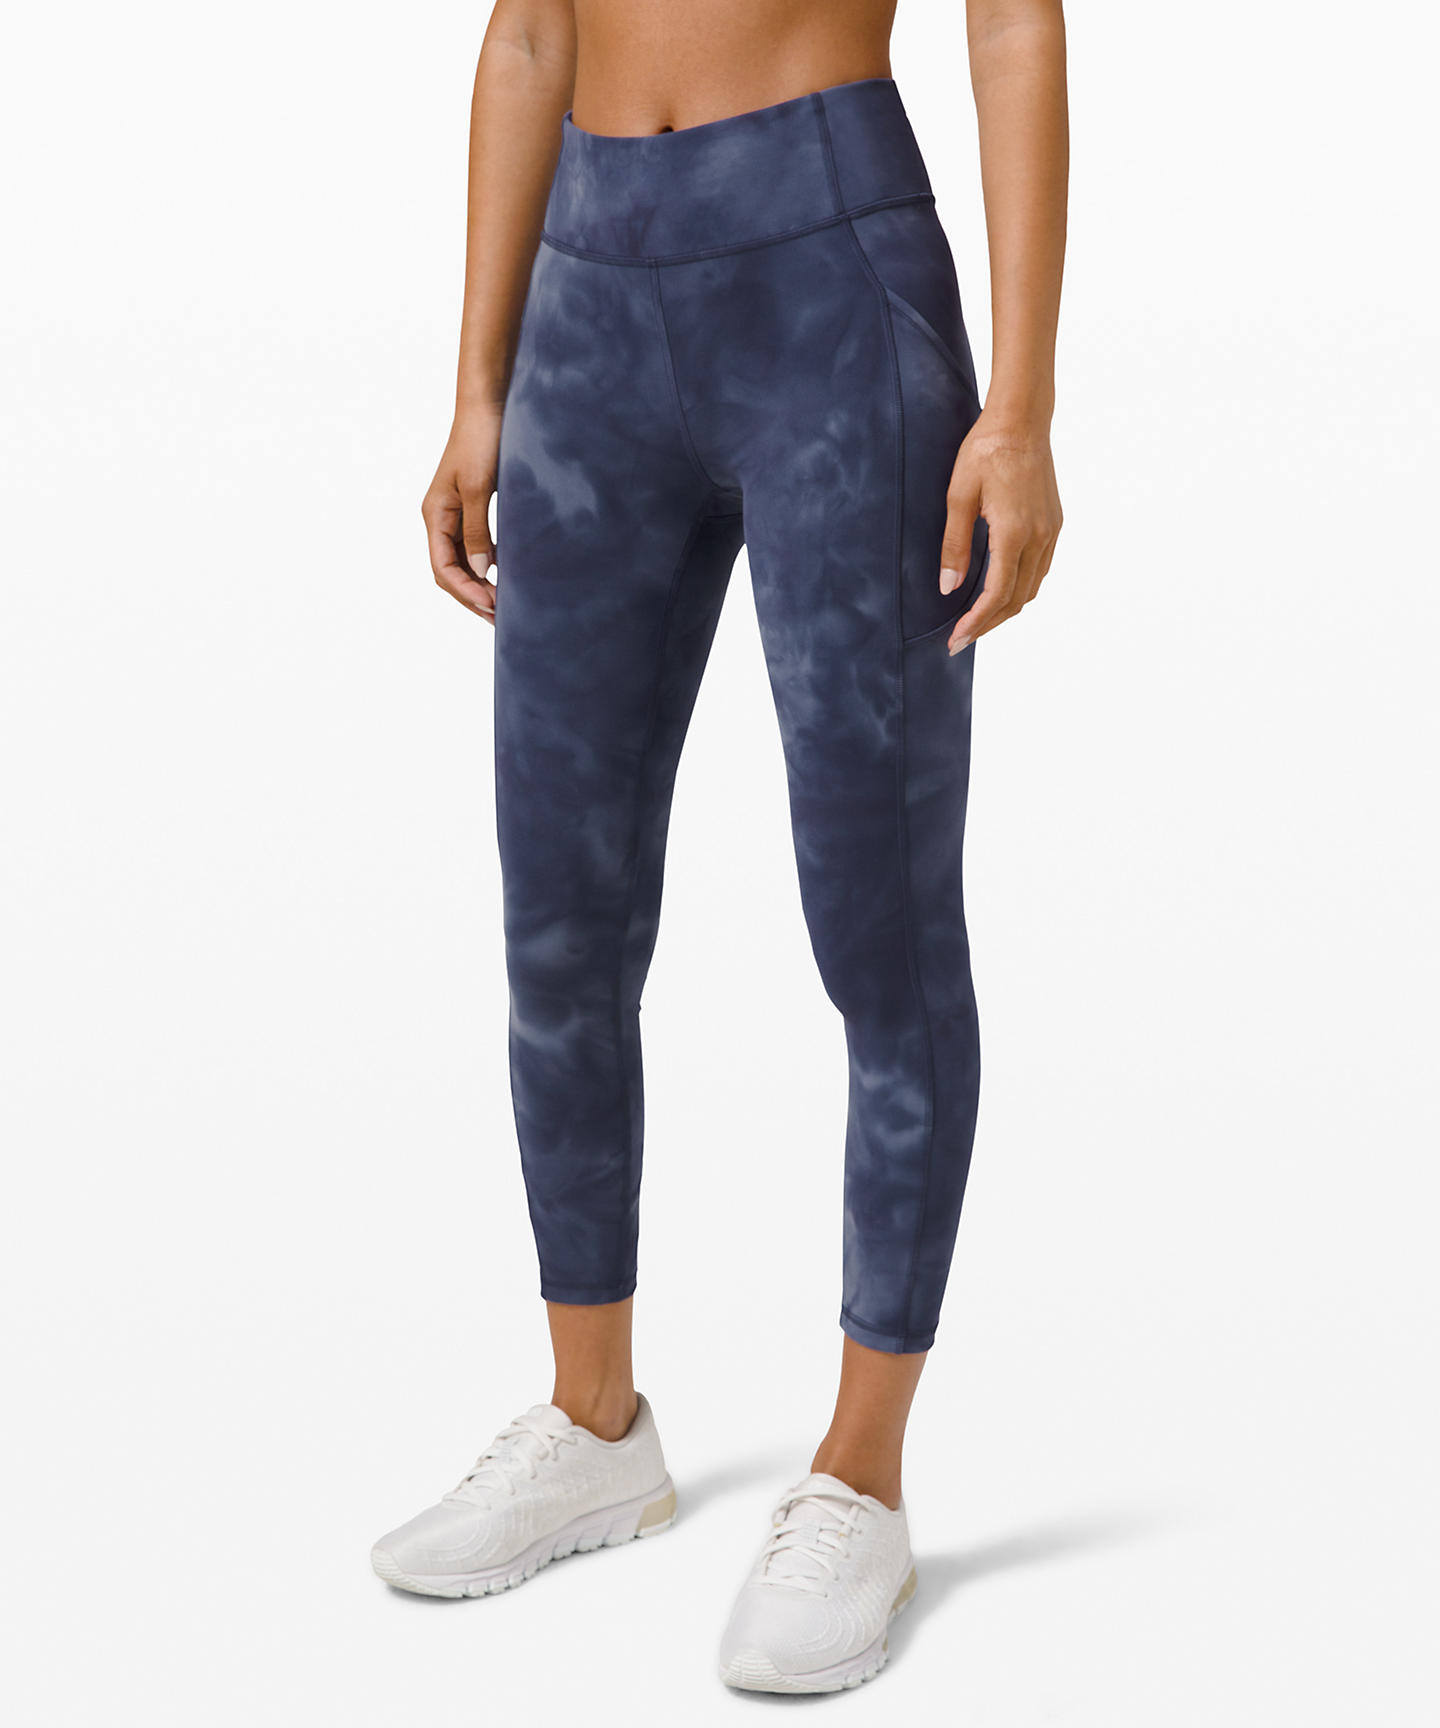 Dispatch From Quarantine: The Lululemon Upload, loungewear trends during shelter-in-place 2020, tie-dye leggings Lululemon,